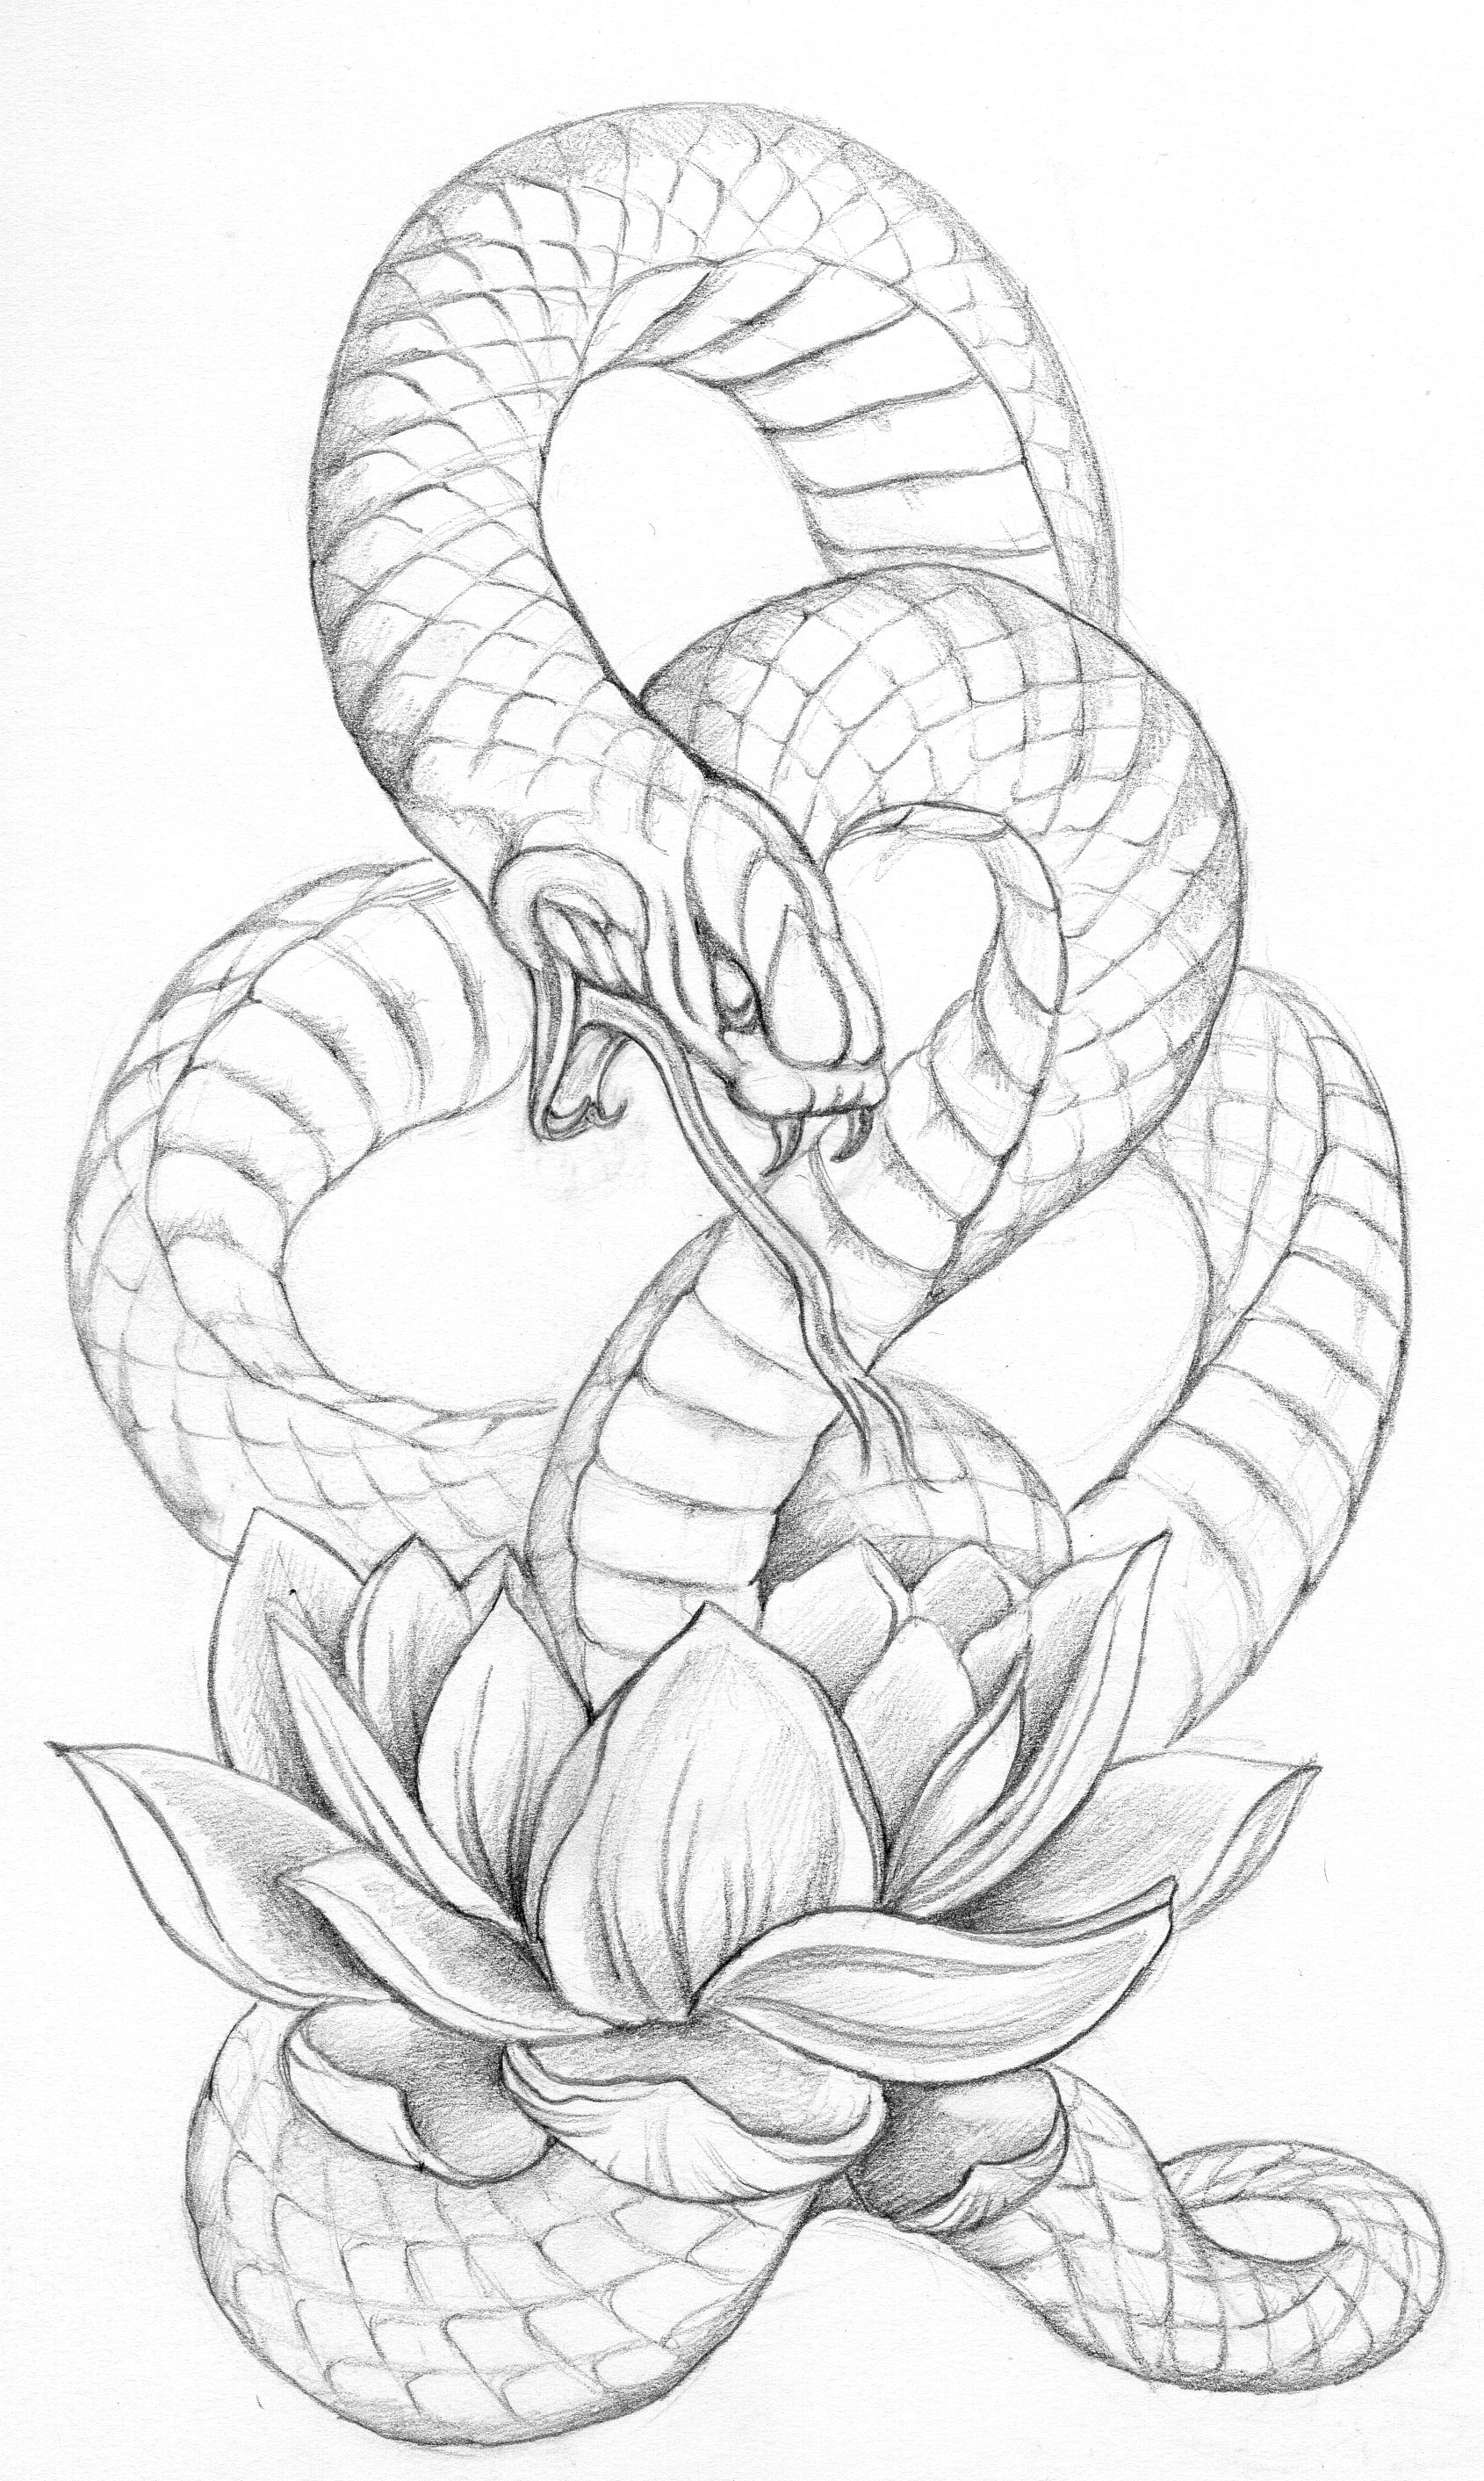 Google Image Result For Katseyedesignca Albums Tattoos Images Snake 26lotus